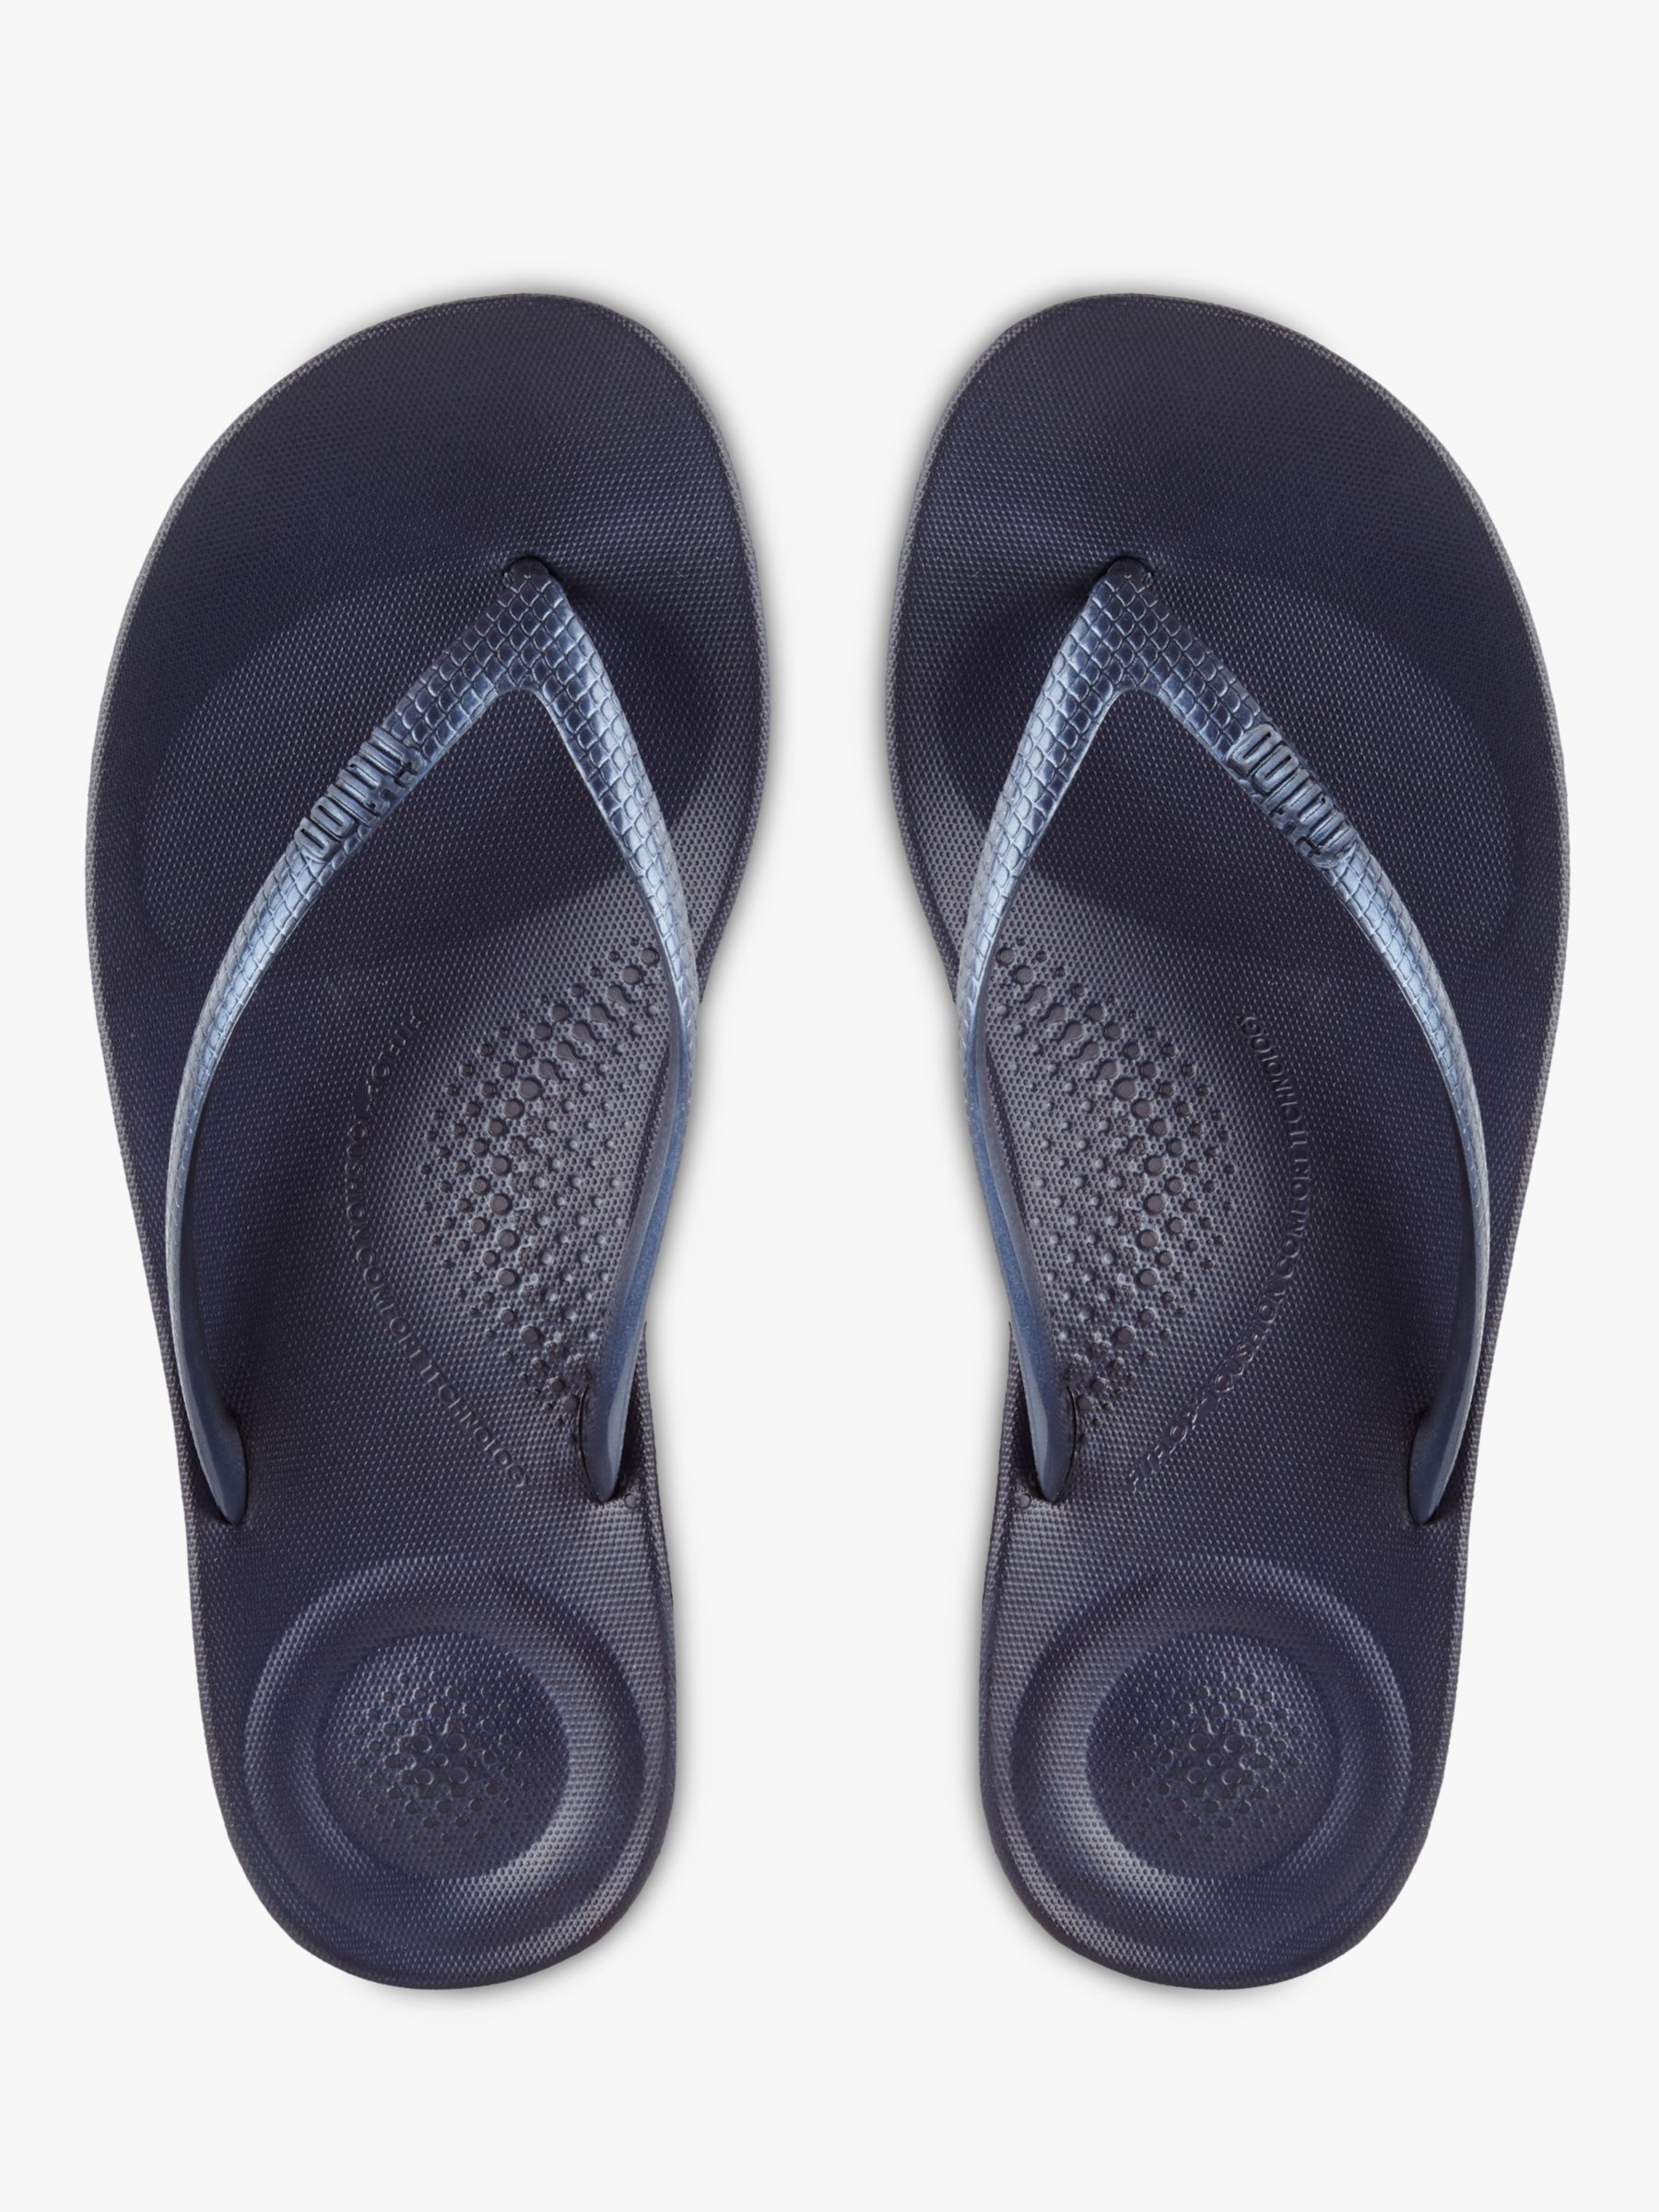 Fitflop Iqushion Ergonomic Flip Flops Most Comfortable Sandals